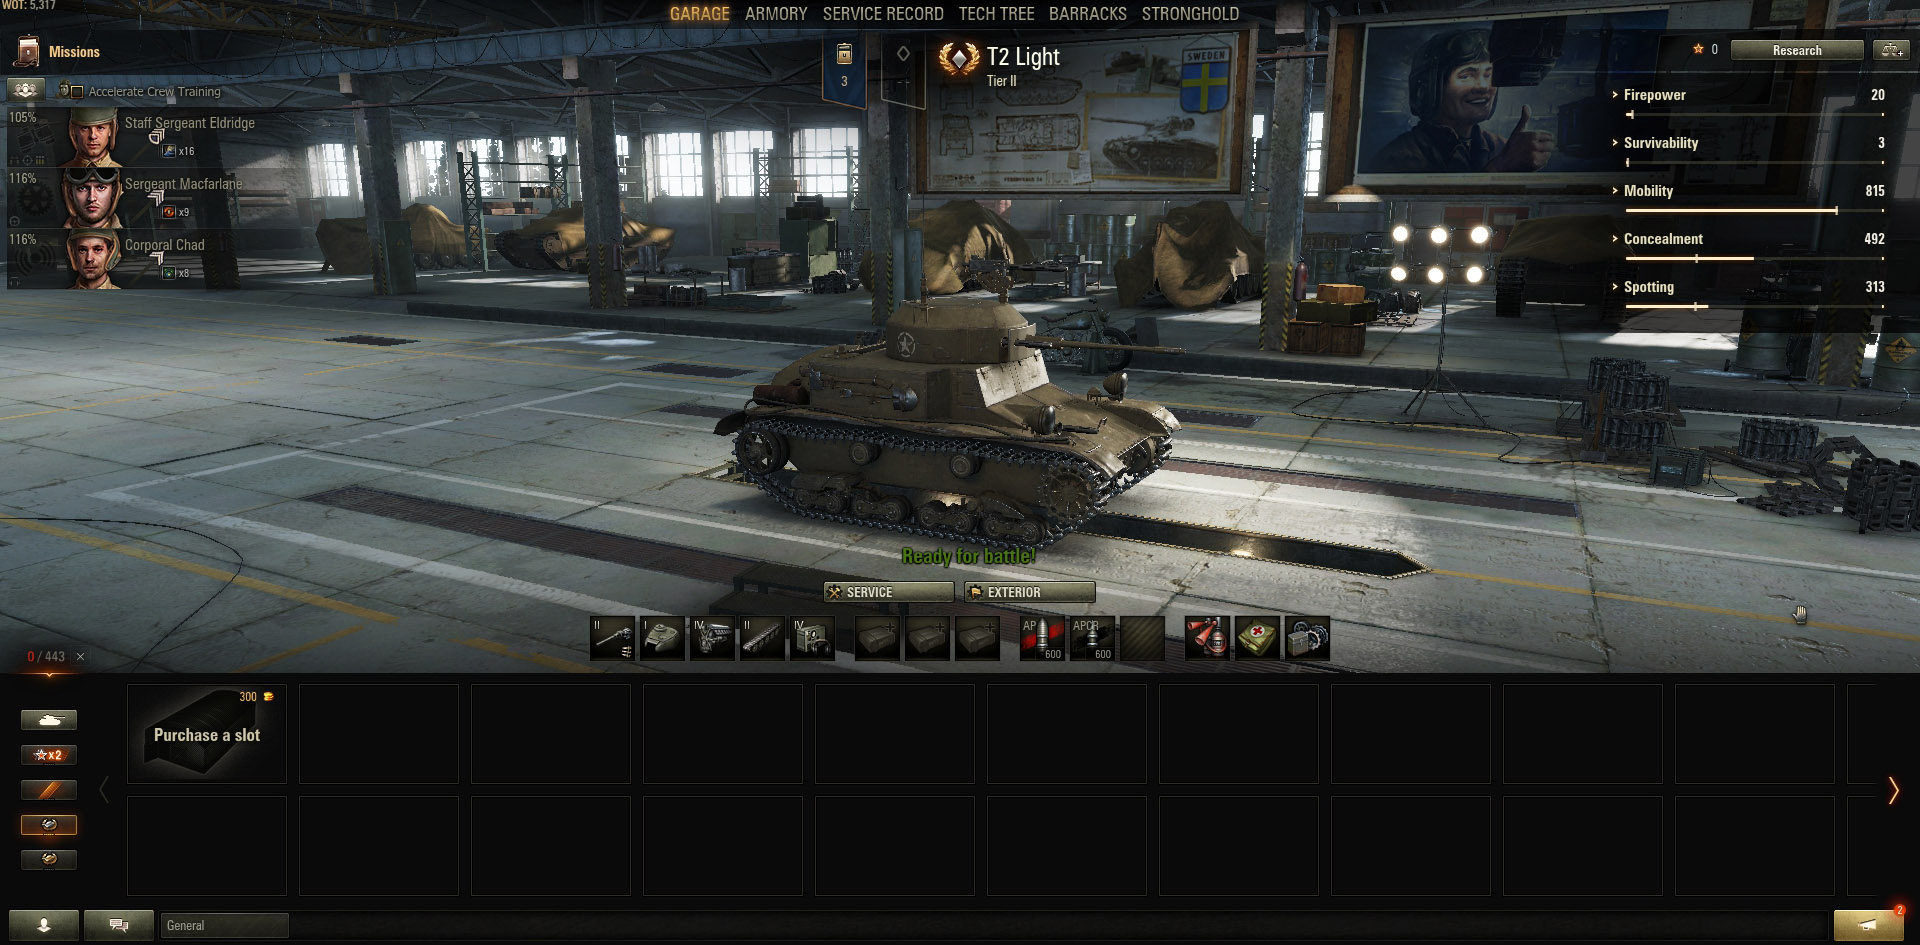 The T2 Light tank is one of the lowest tiered Premium tanks available.